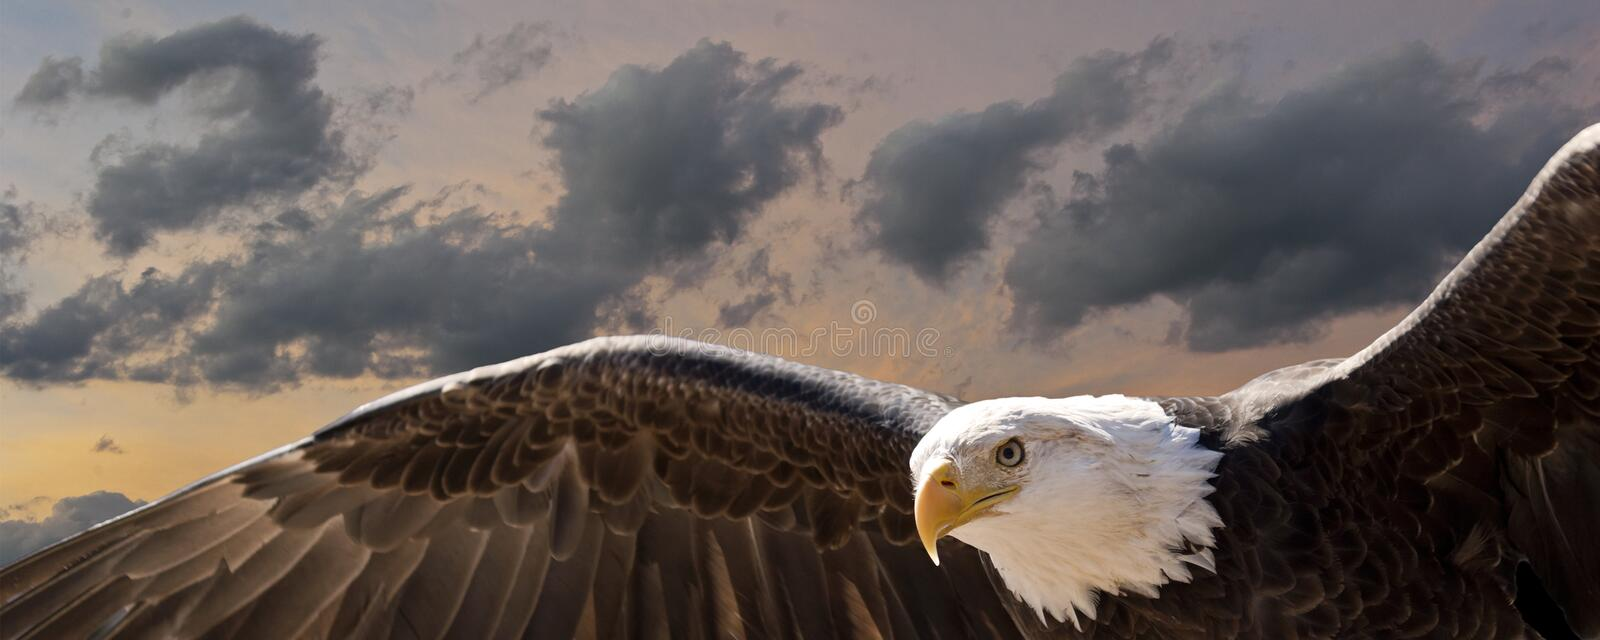 Bald eagle at sunset composite stock photography